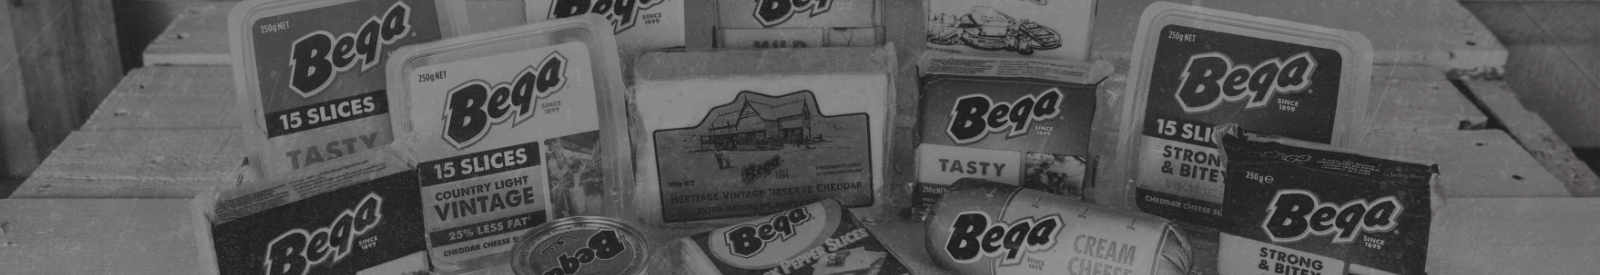 Cheese selections at the Bega Cheese Heritage Centre